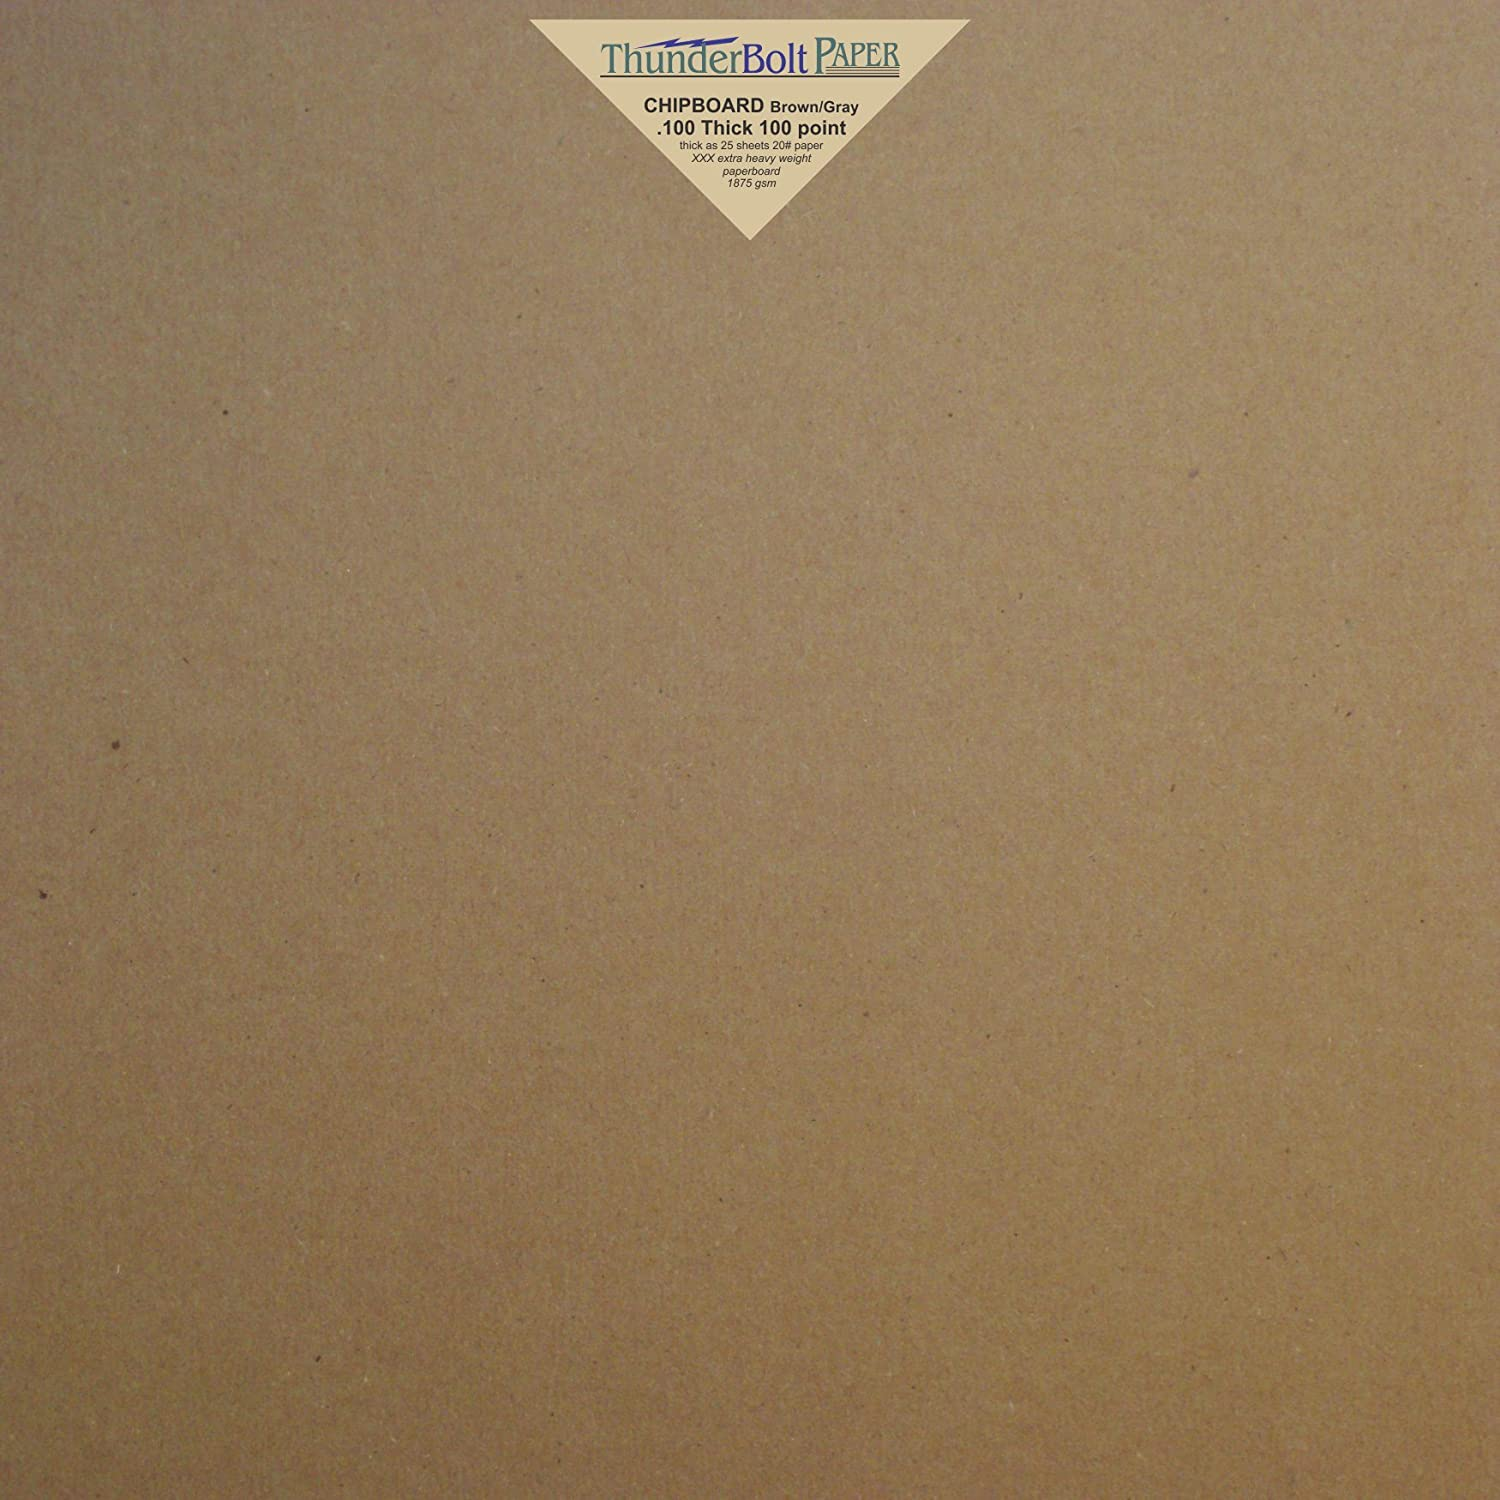 12X12 Inches 4 Sheets Brown Chipboard 100 Point Extra Thick 12 X 12 Scrapbook Album Page Size .100 Caliper XXX Heavy Cardboard as Thick as 25 Sheets of 20# Paper